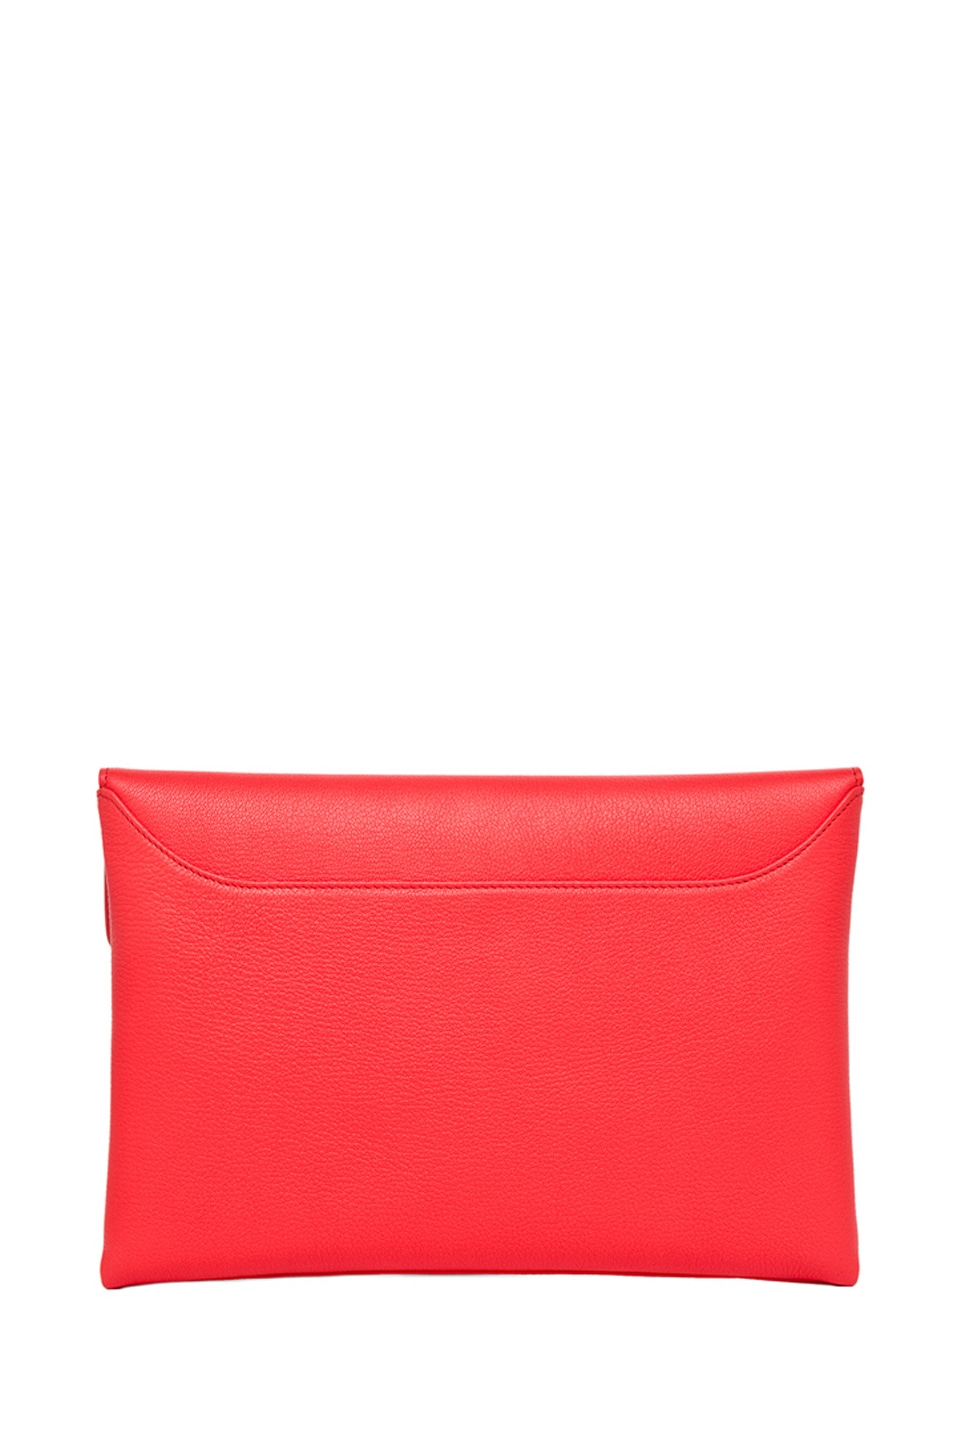 Image 2 of GIVENCHY Medium Antigona Clutch in Red